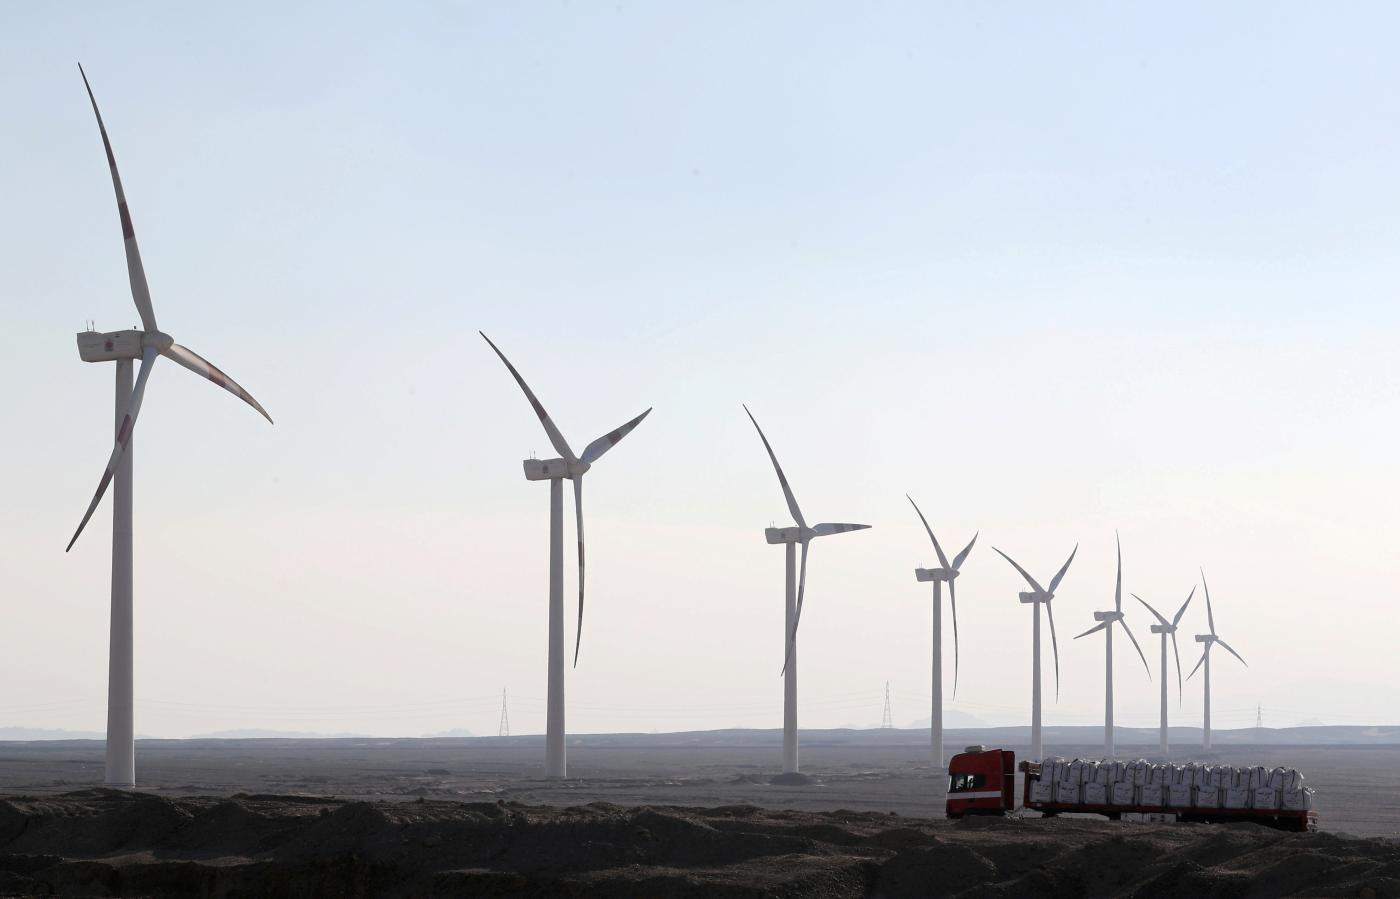 More of Africa's leading economies are already looking to wind to power their homes